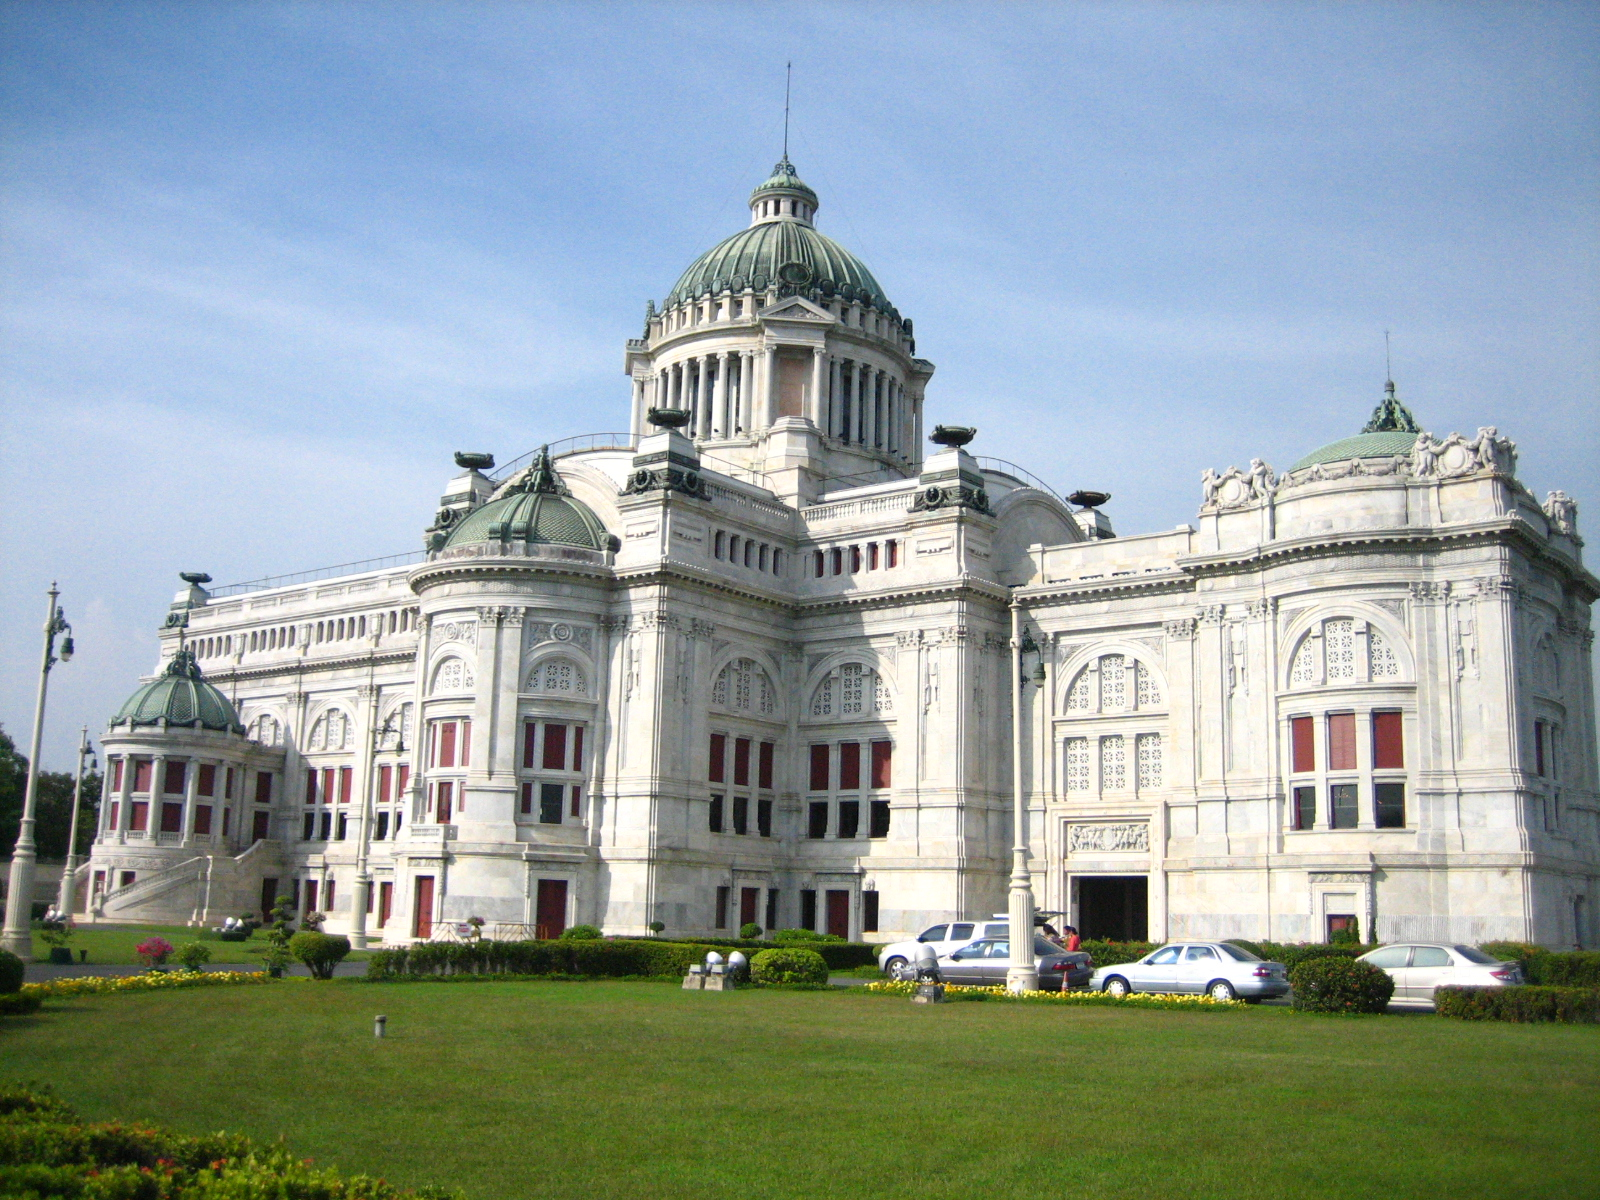 Ananta Samakhom Throne Hall. Photograph taken on December 22, 2007.